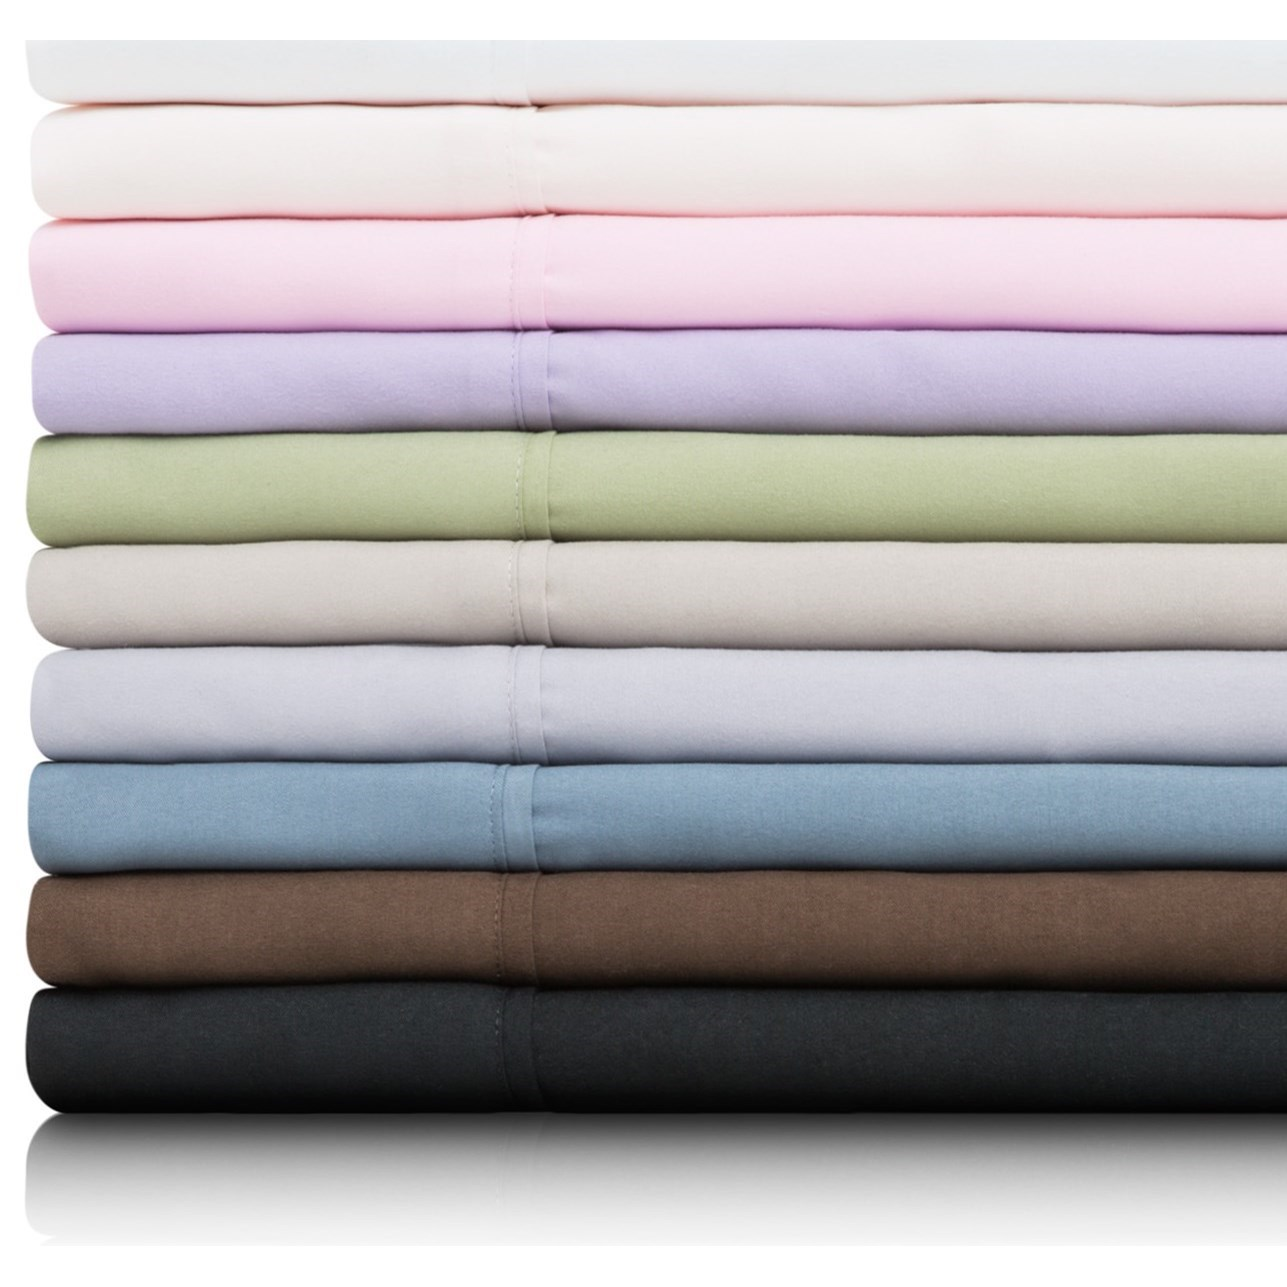 Malouf Brushed Microfiber Cal King Woven™ Brushed Microfiber Sheet Set - Item Number: MA90CKDRMS